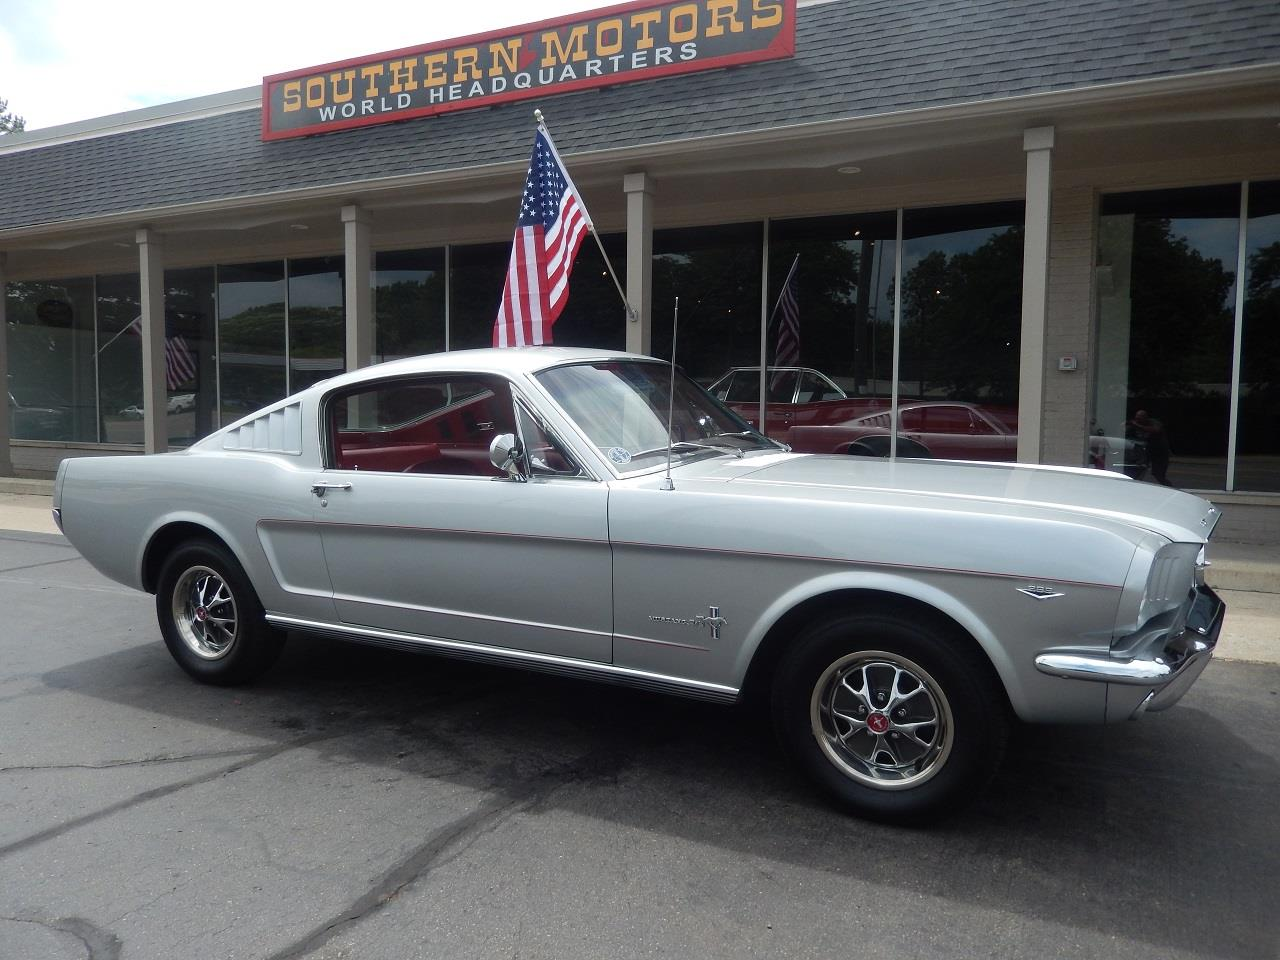 Ford Mustang Fastback v8 1966 prix tout compris 1966